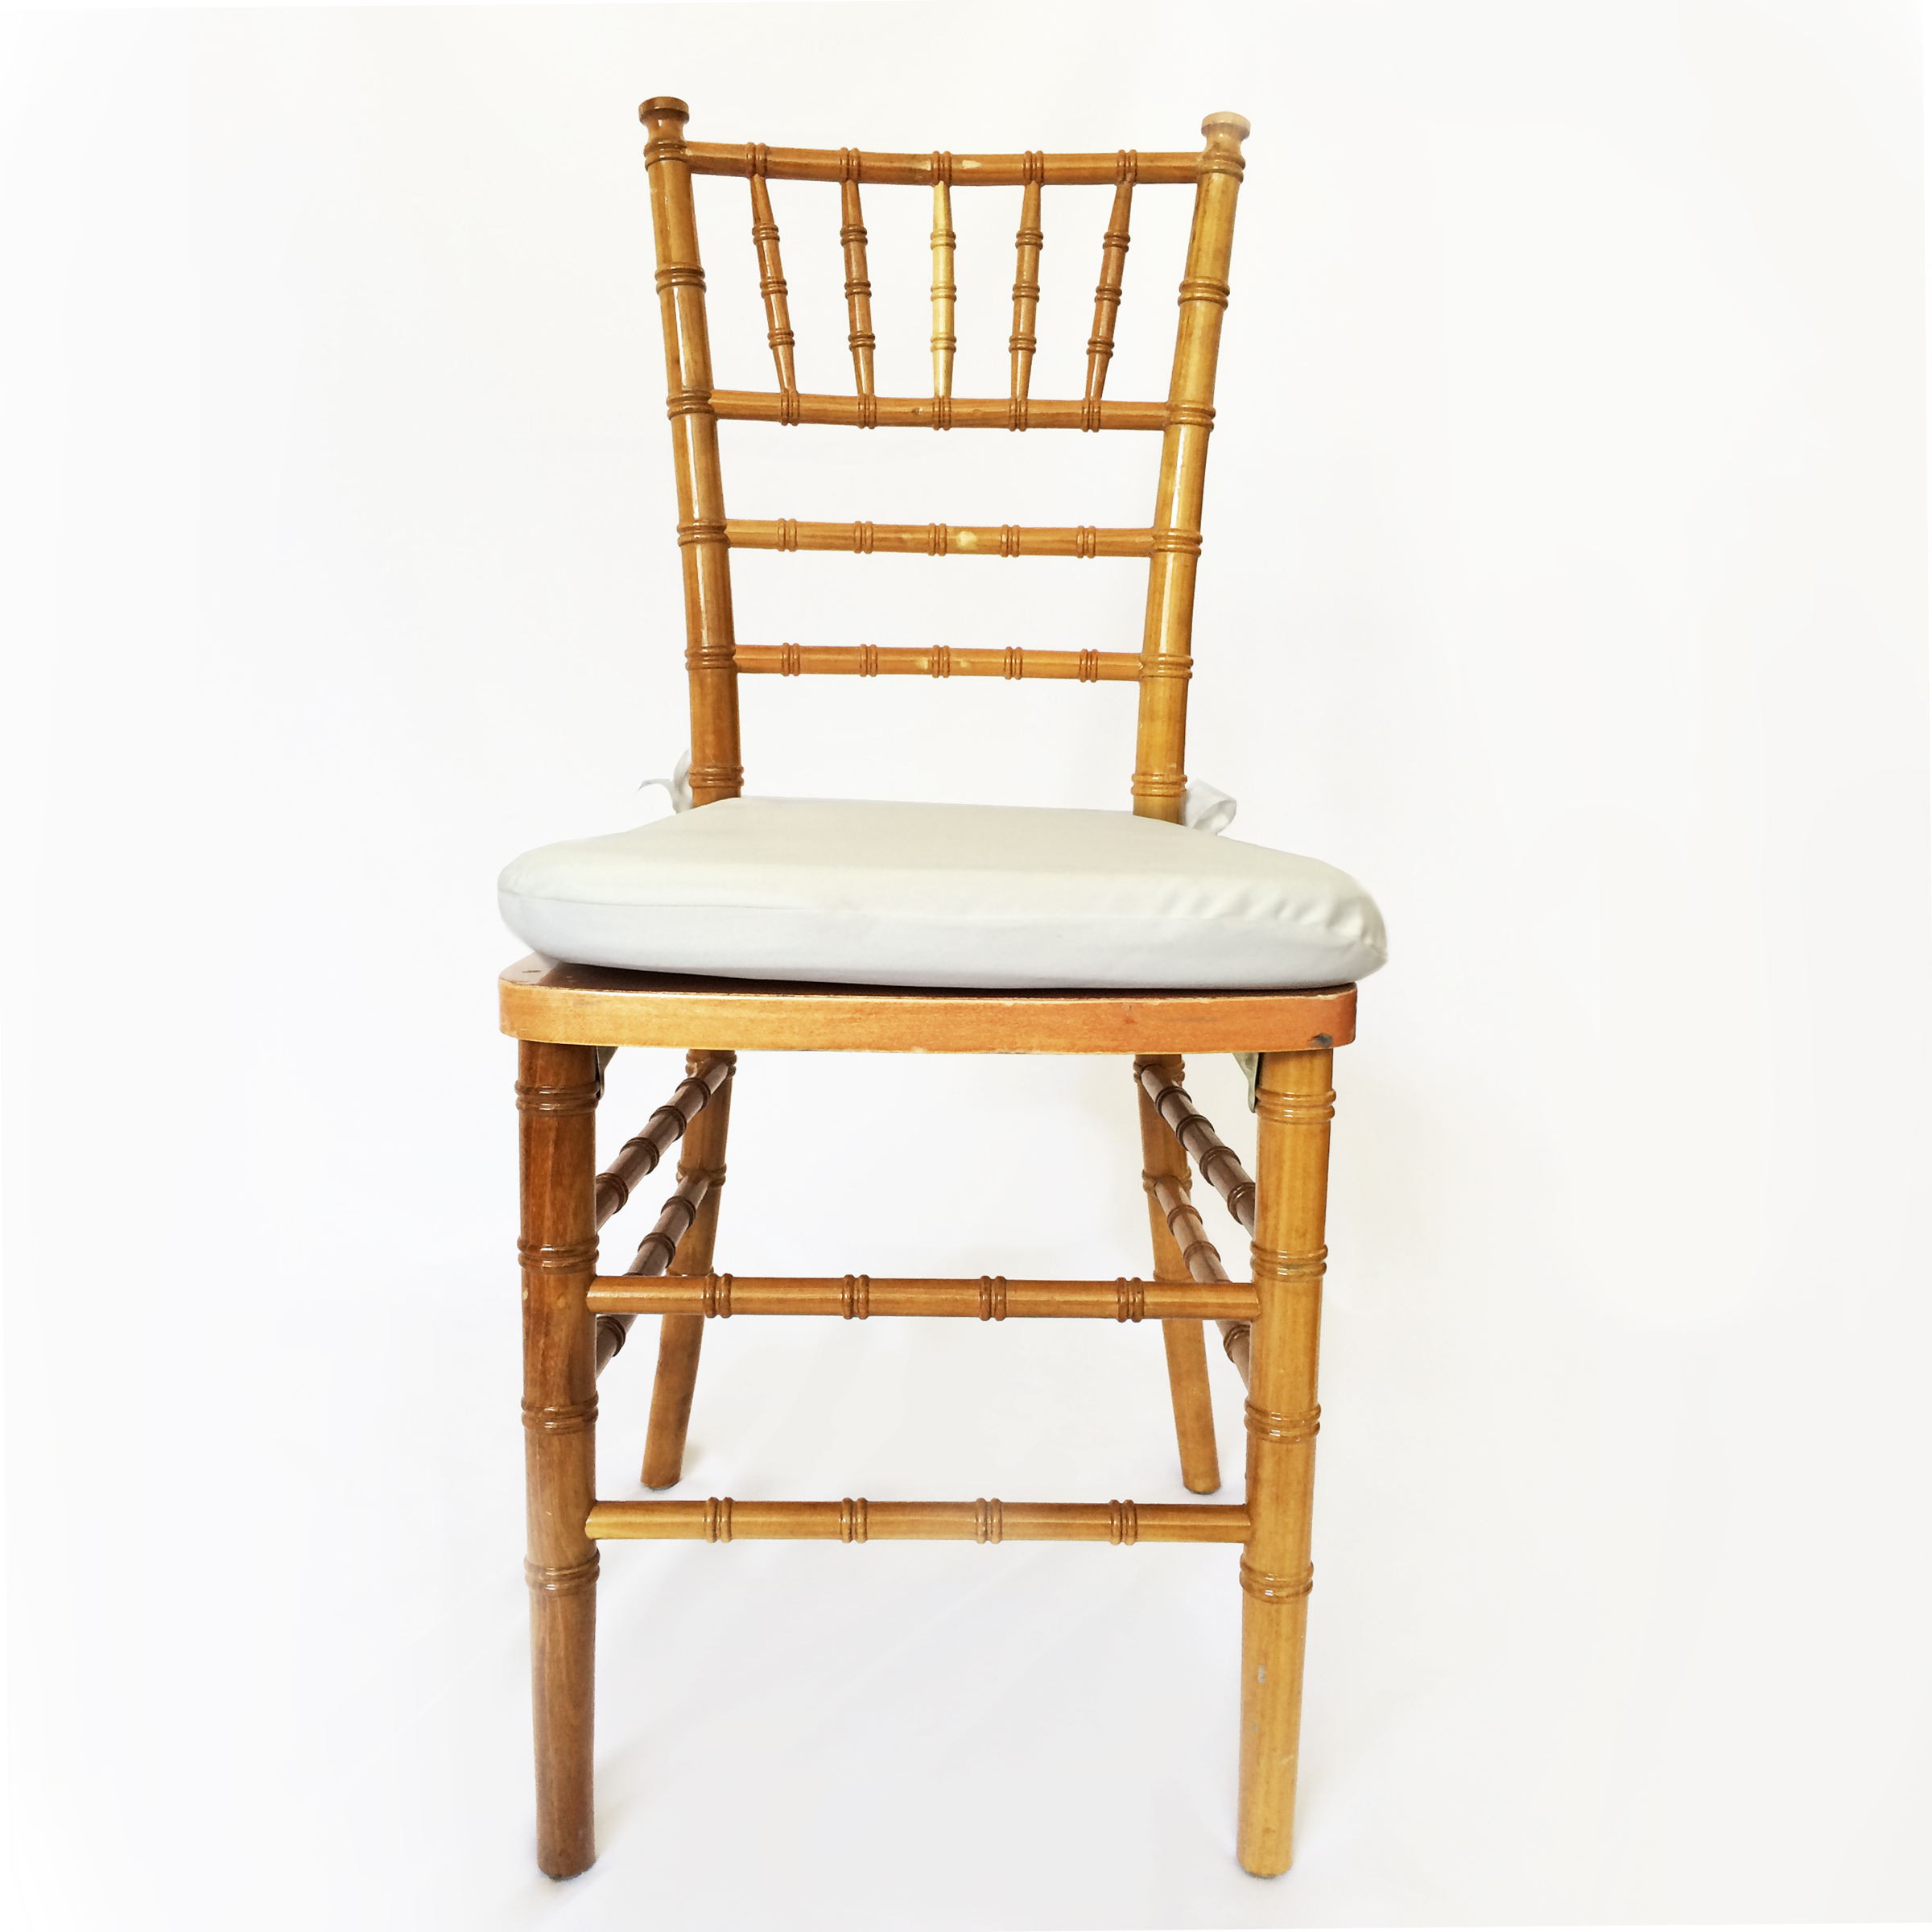 natural chiavari chairs r chair seat cushion included simple rustic florals